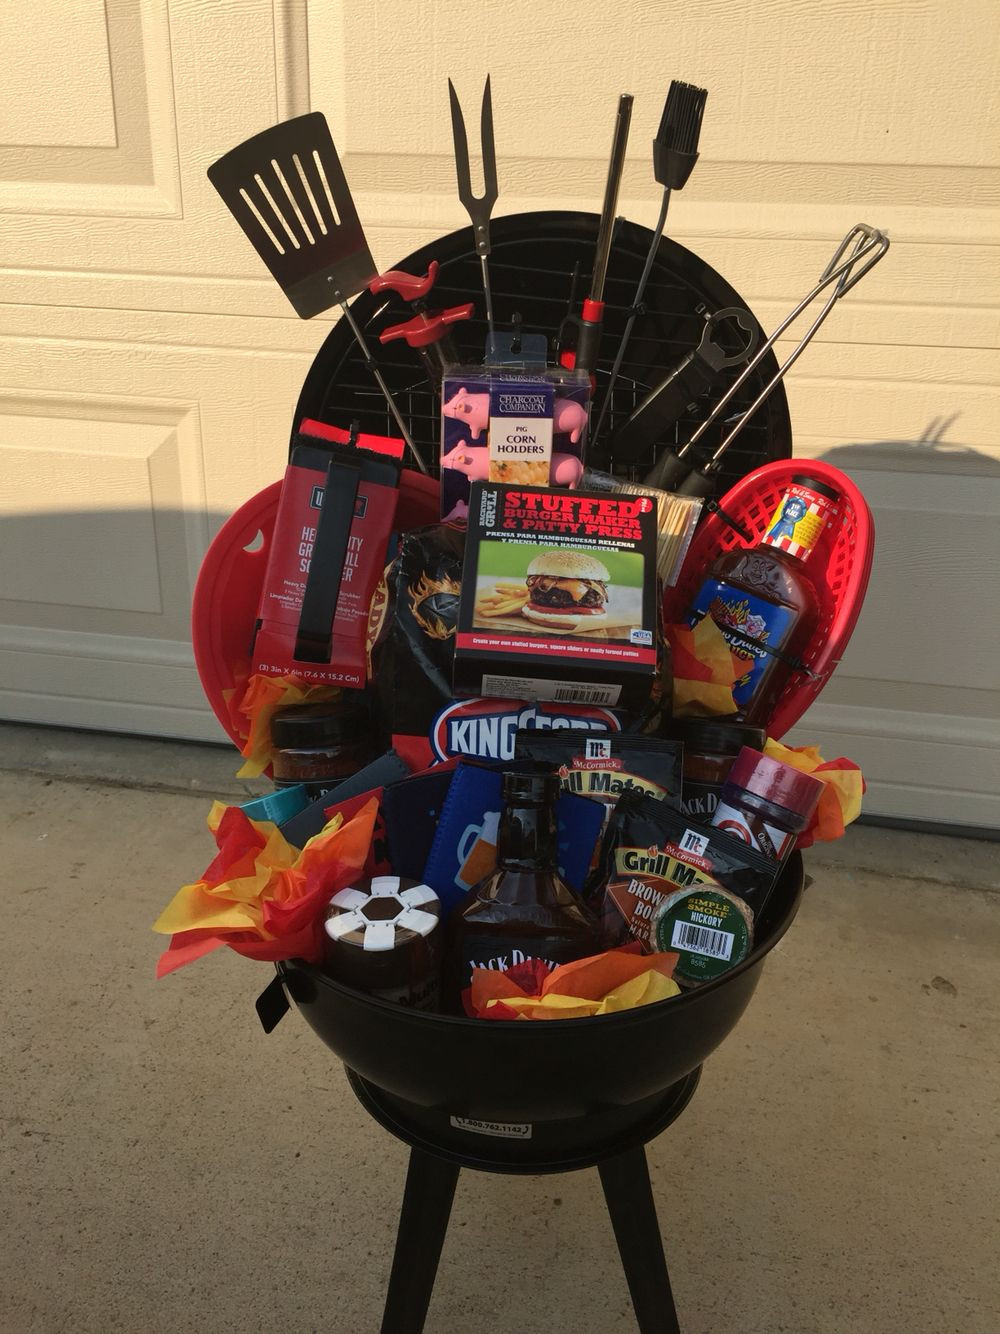 Best ideas about Grilling Gift Basket Ideas . Save or Pin My BBQ t basket … t ideas Now.